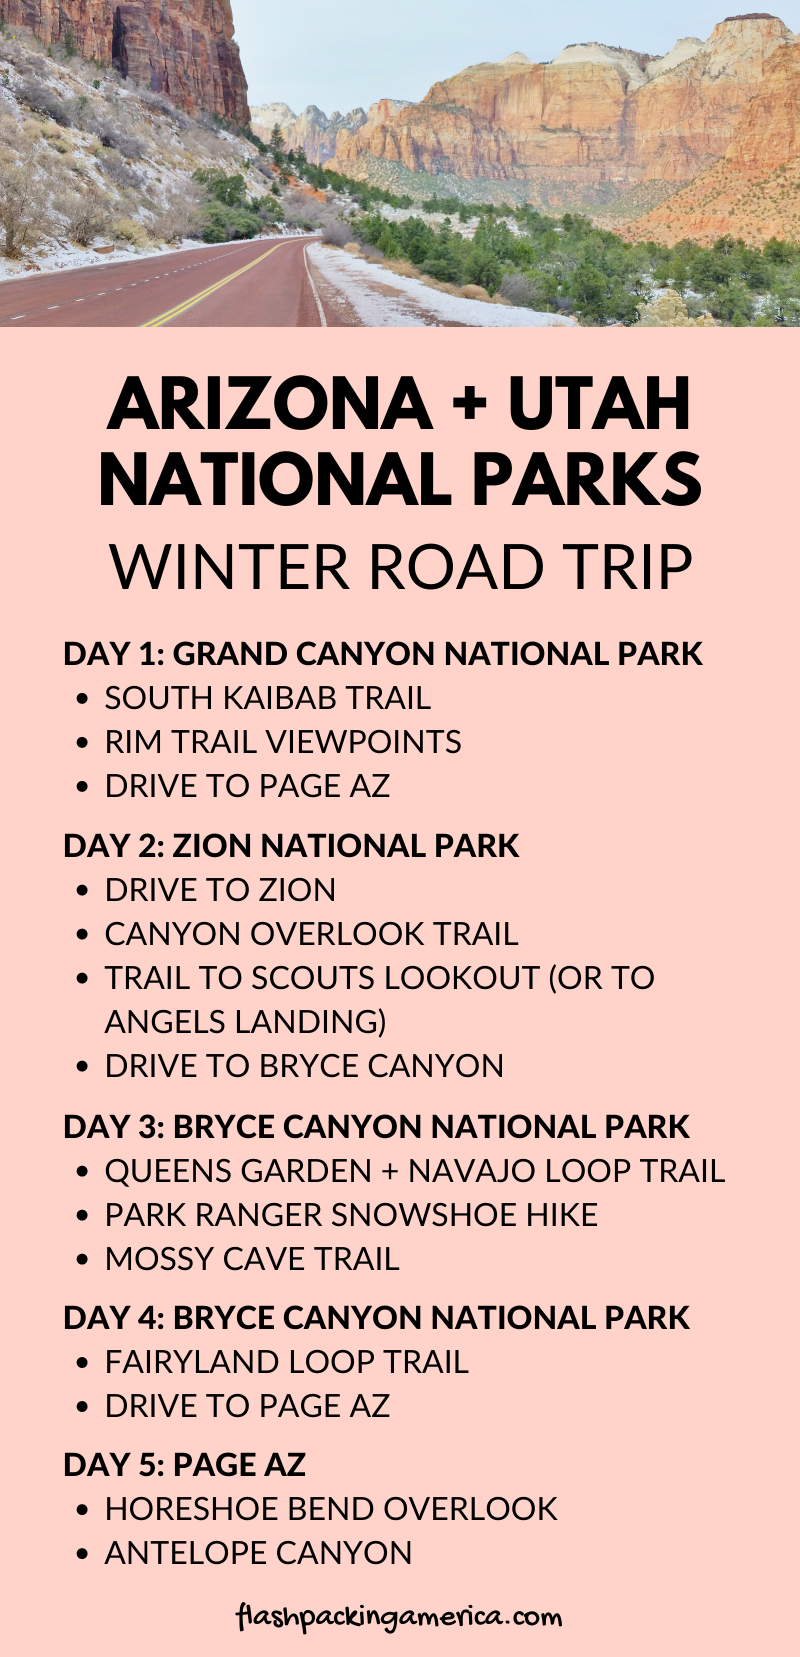 Arizona Utah national parks itinerary 5 day winter road trip